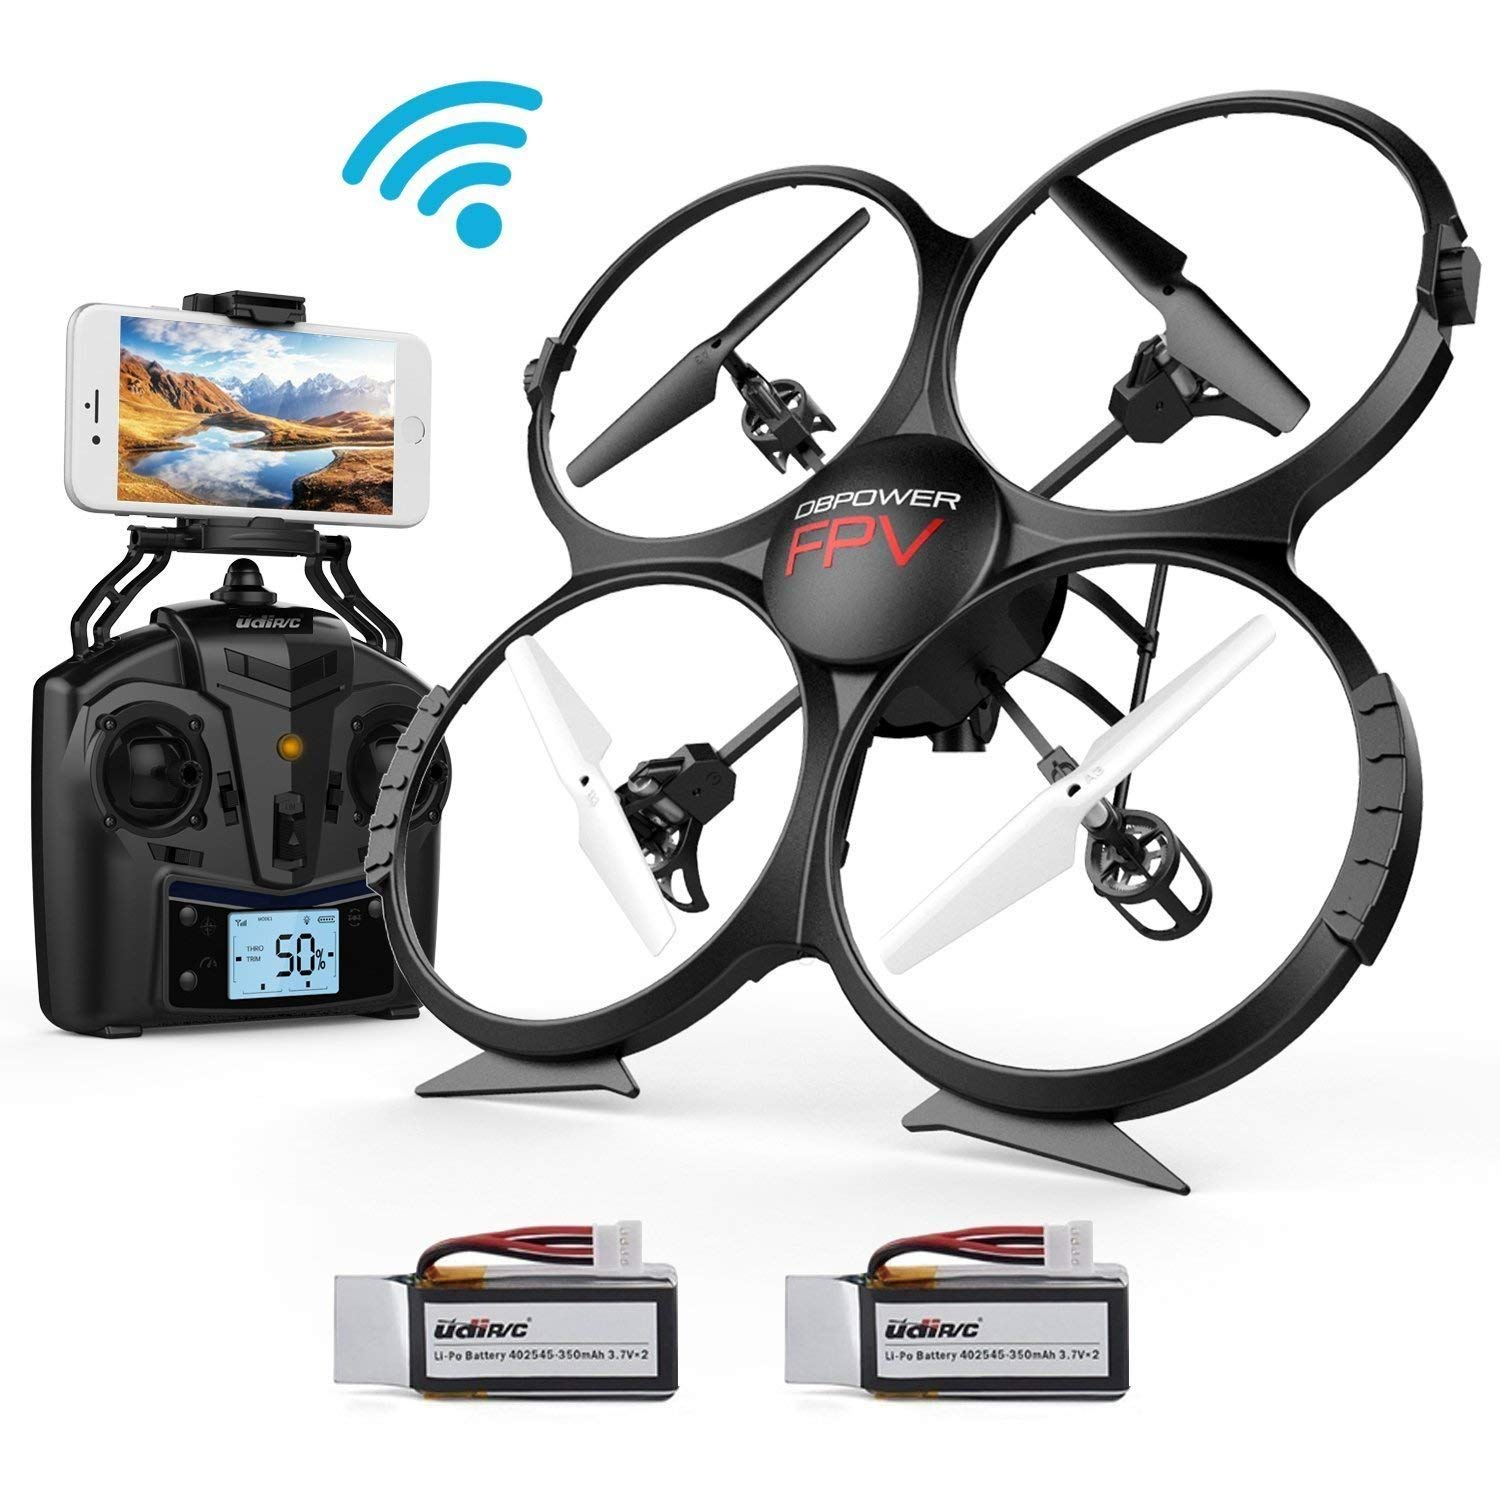 Best Drones Under $100 Are Available : Find It Here.